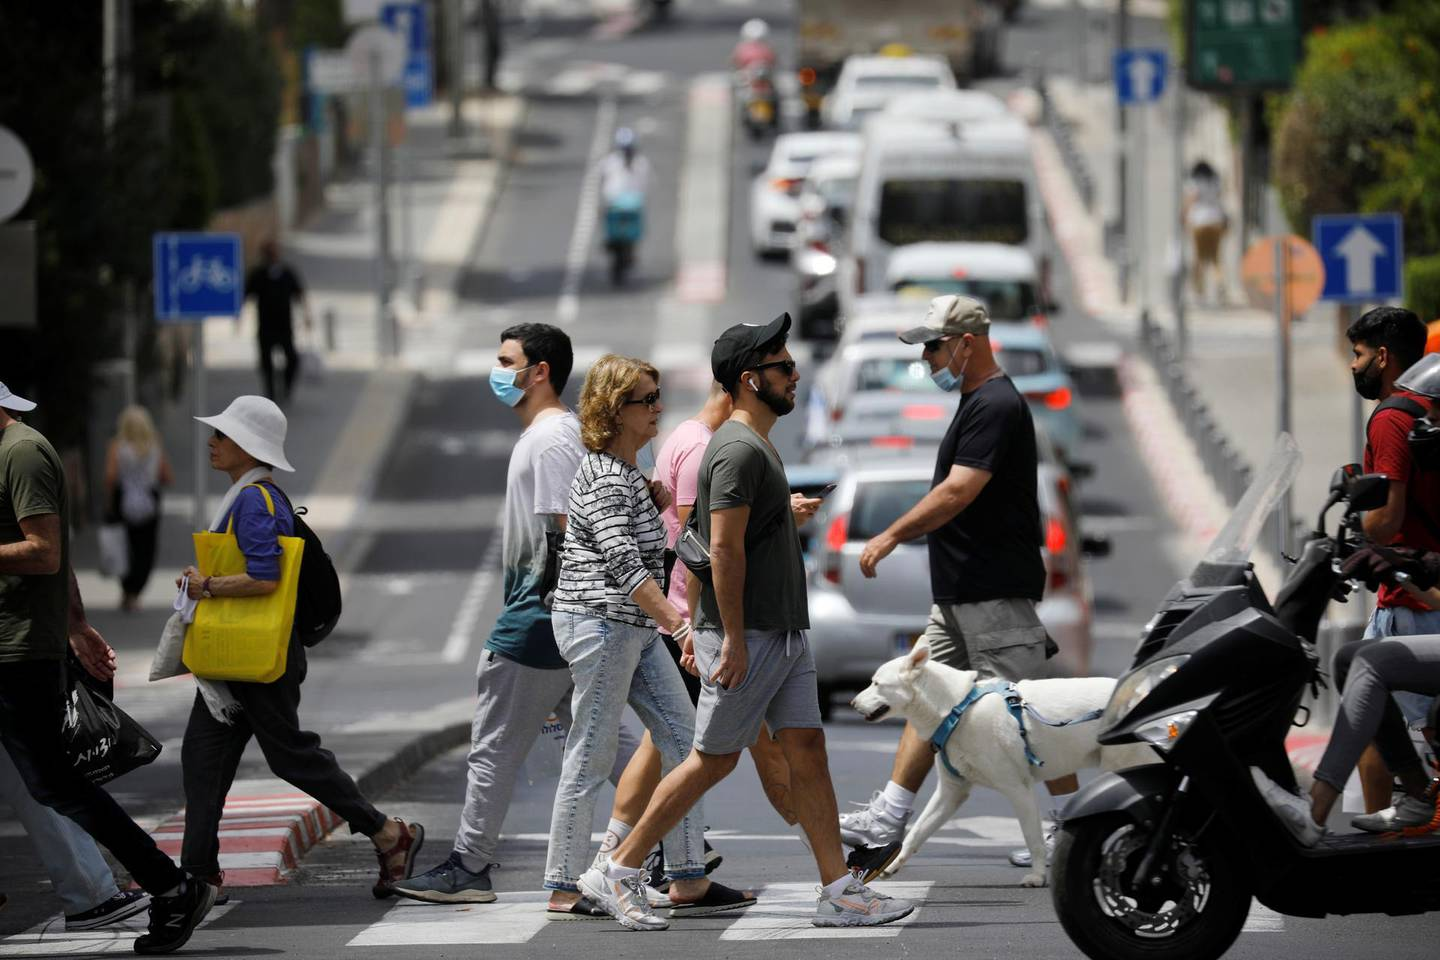 Pedestrians cross a street as Israel rescinds the mandatory wearing of face masks outdoors in the latest return to relative normality, boosted by a mass-vaccination campaign against the coronavirus disease (COVID-19) pandemic, in Tel Aviv, Israel April 18, 2021. REUTERS/Amir Cohen